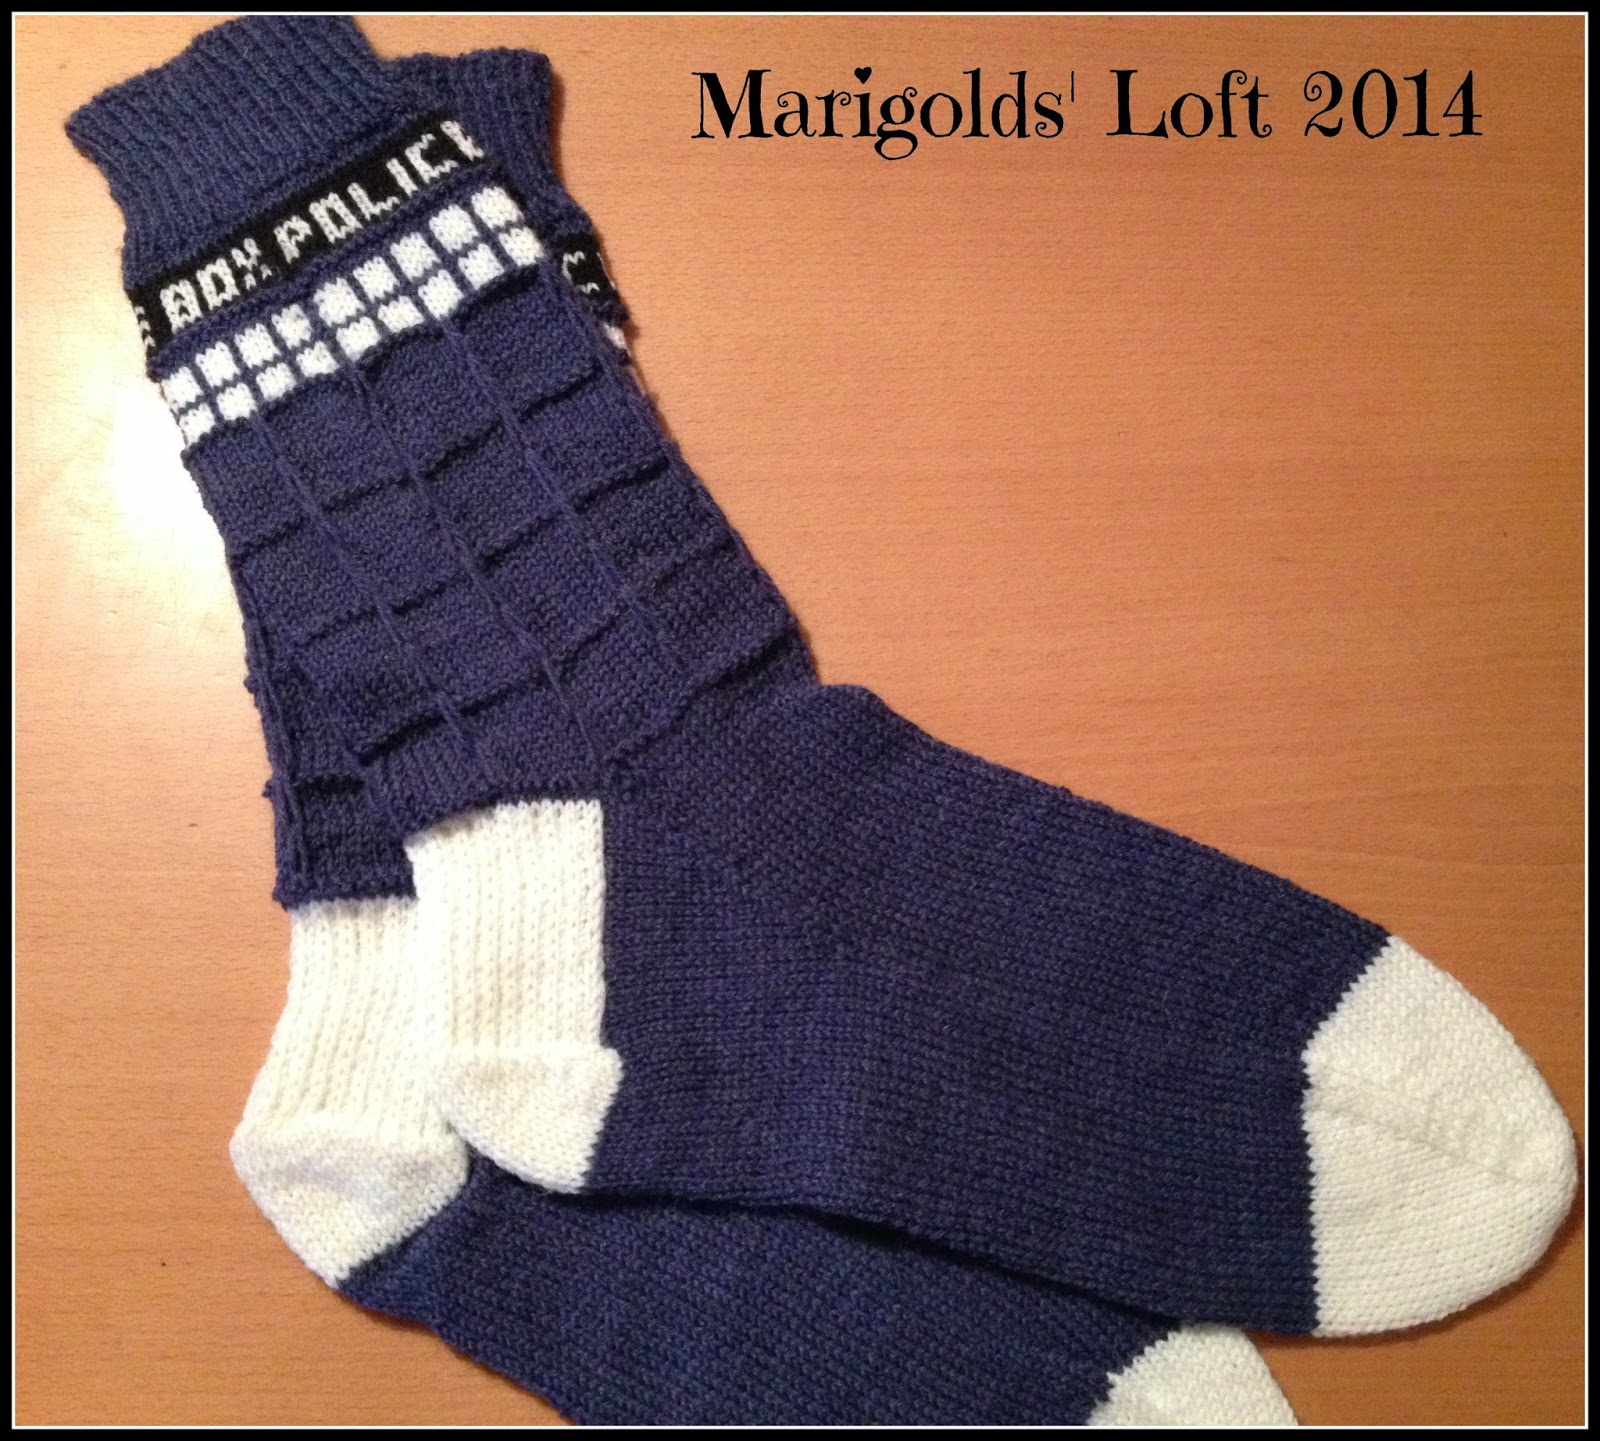 tardis socks for men